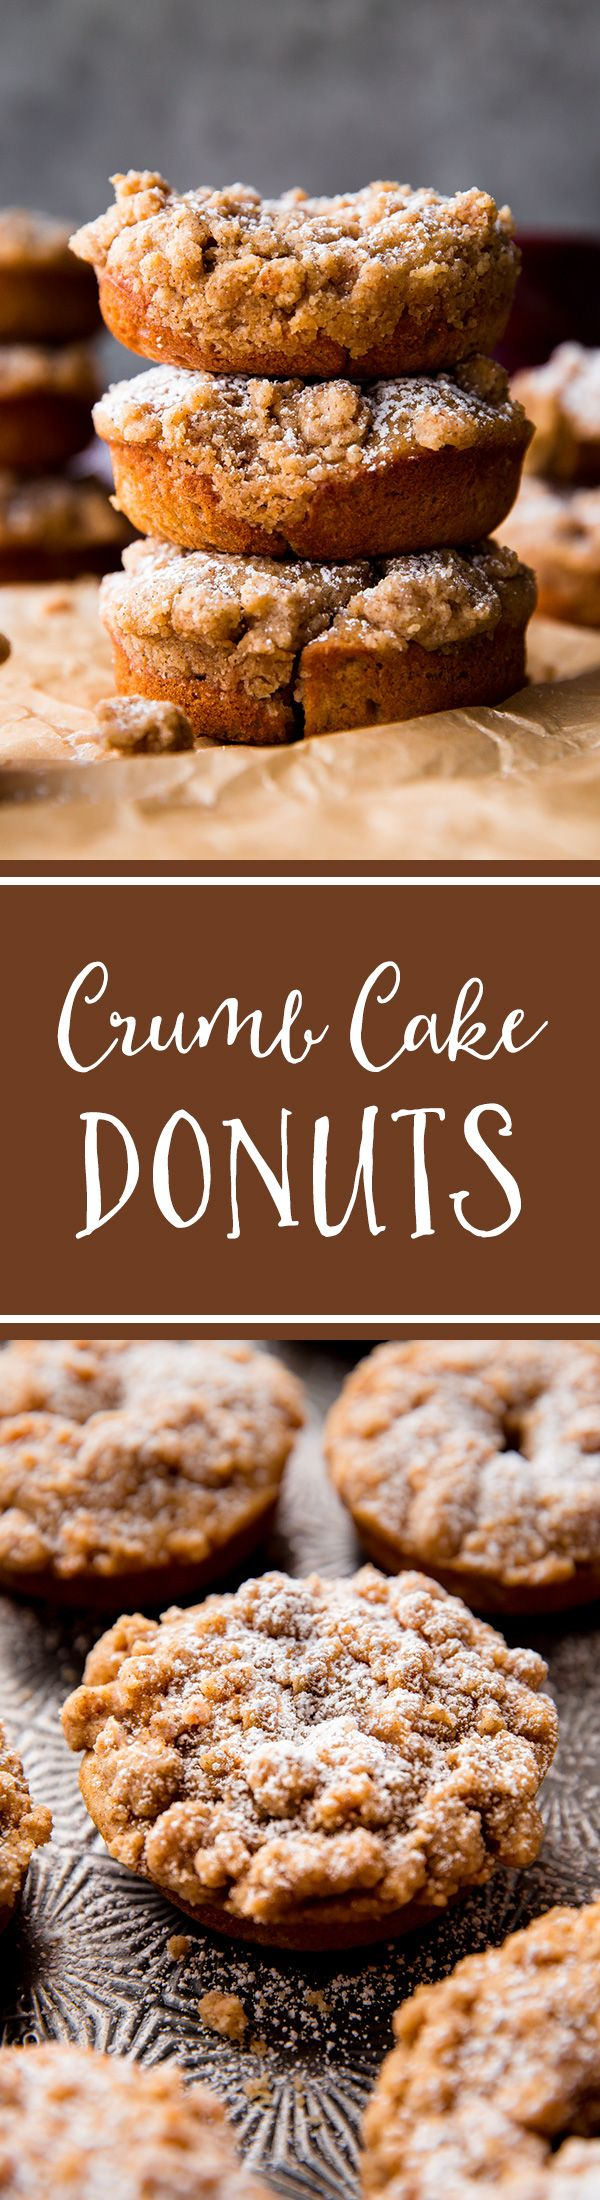 Crumb cake donuts, baked not fried, and HEAVY on the brown sugar cinnamon crumb topping. Recipe on sallysbakingaddiction.com